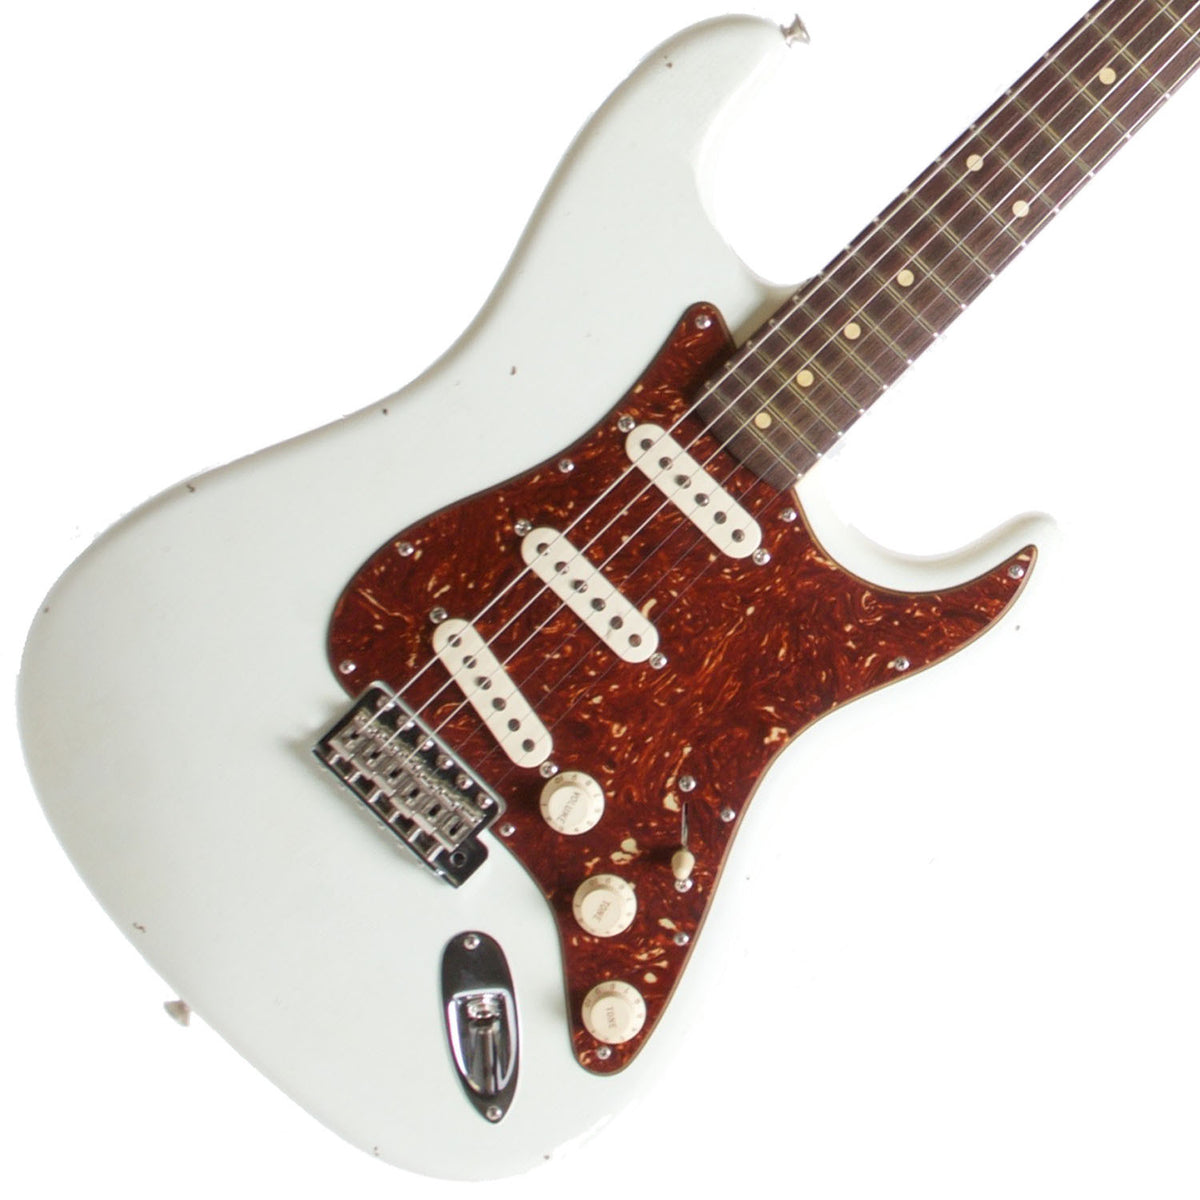 2015 Fender Custom Shop Rocking Dog '62 Stratocaster Olympic White - Garrett Park Guitars  - 1